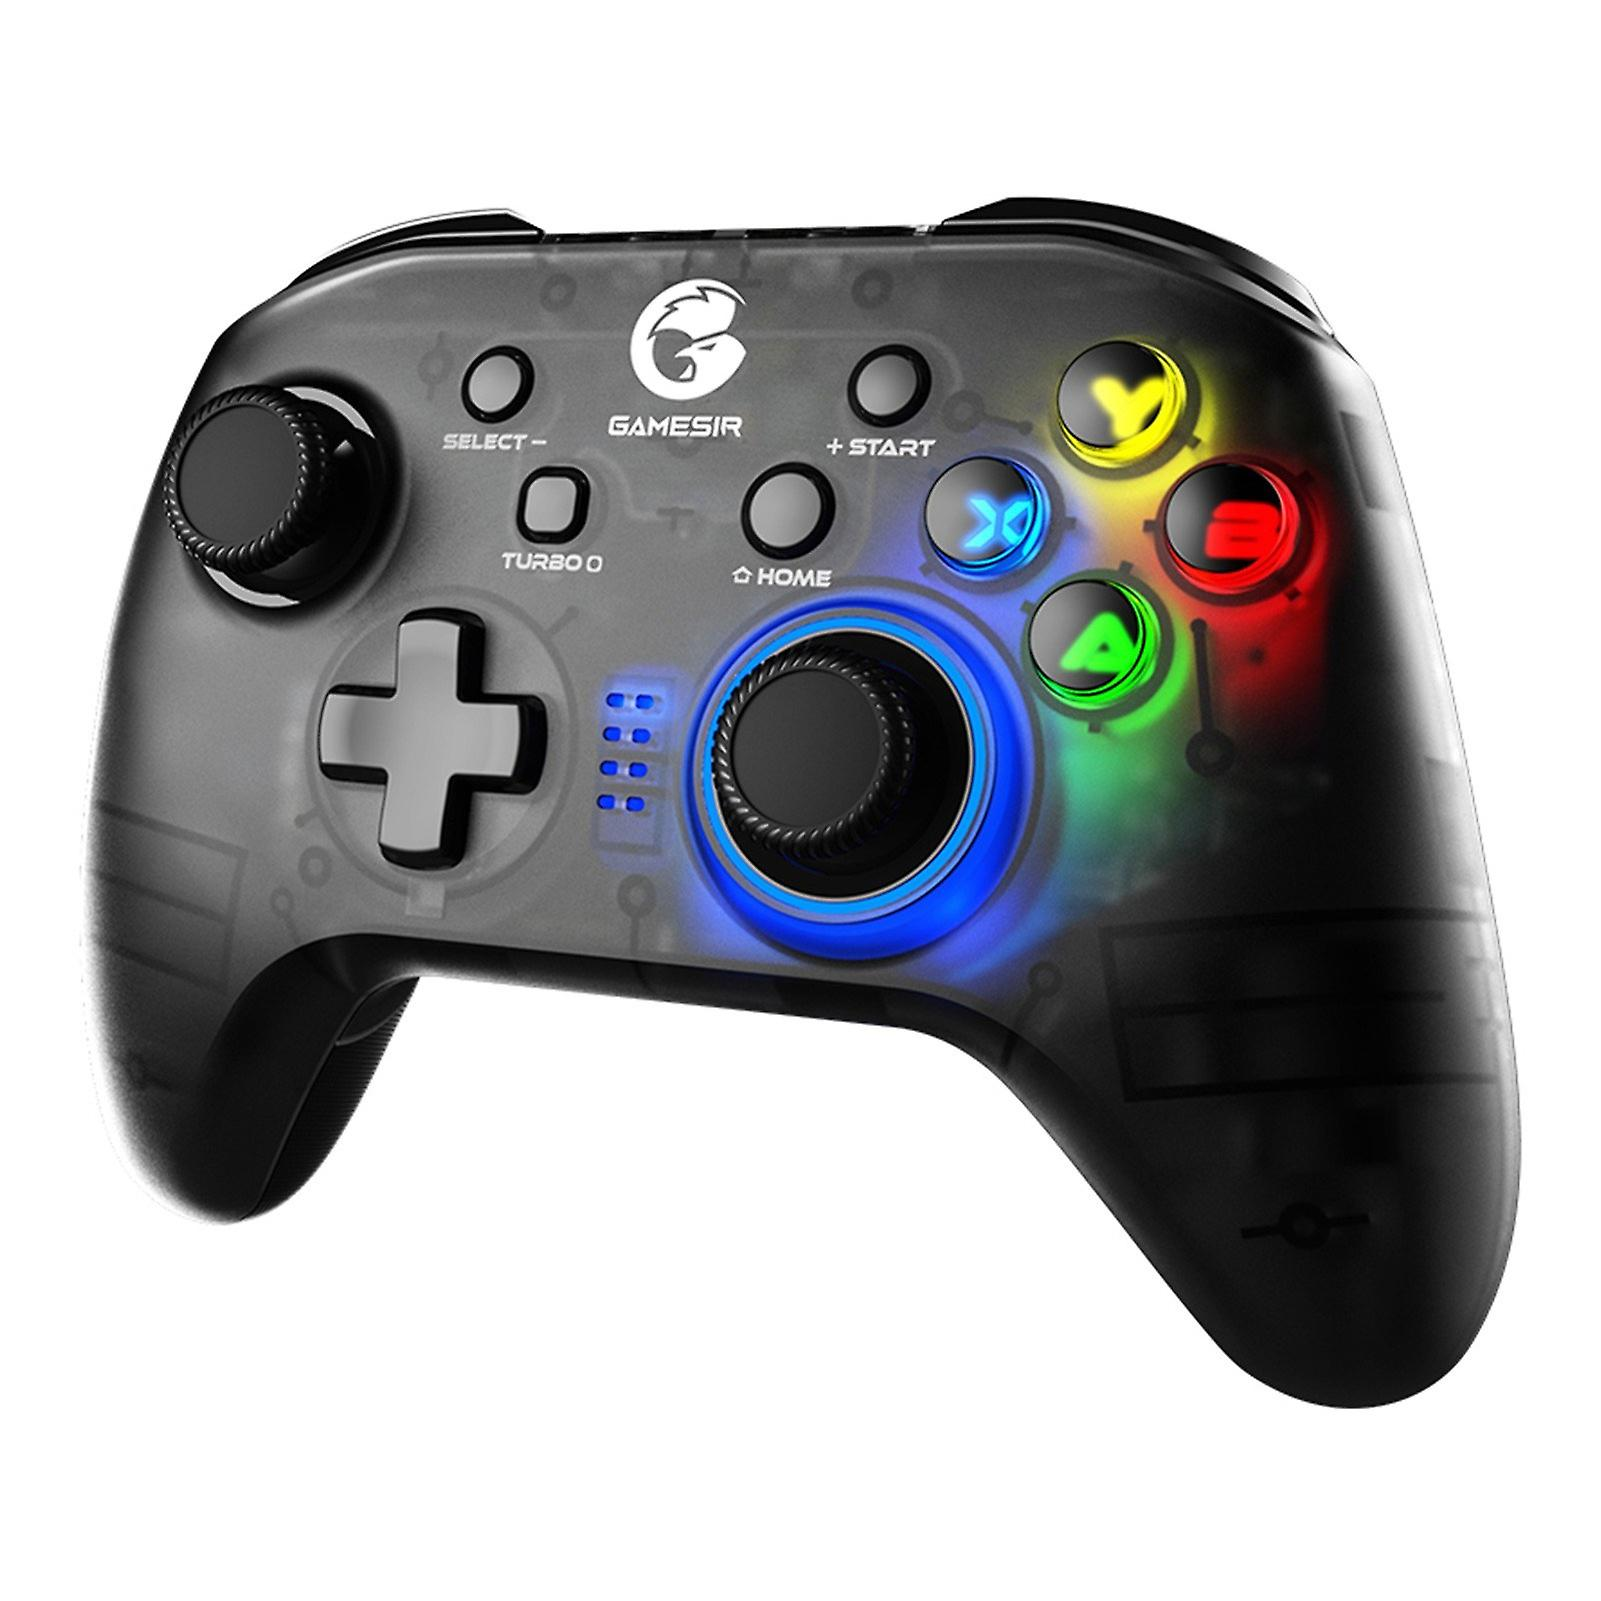 Gamesir T4 Pro Controller; Wireless game controller for Windows 7 8 10 PC/iOS/Android/Switch; Bluetooth USB